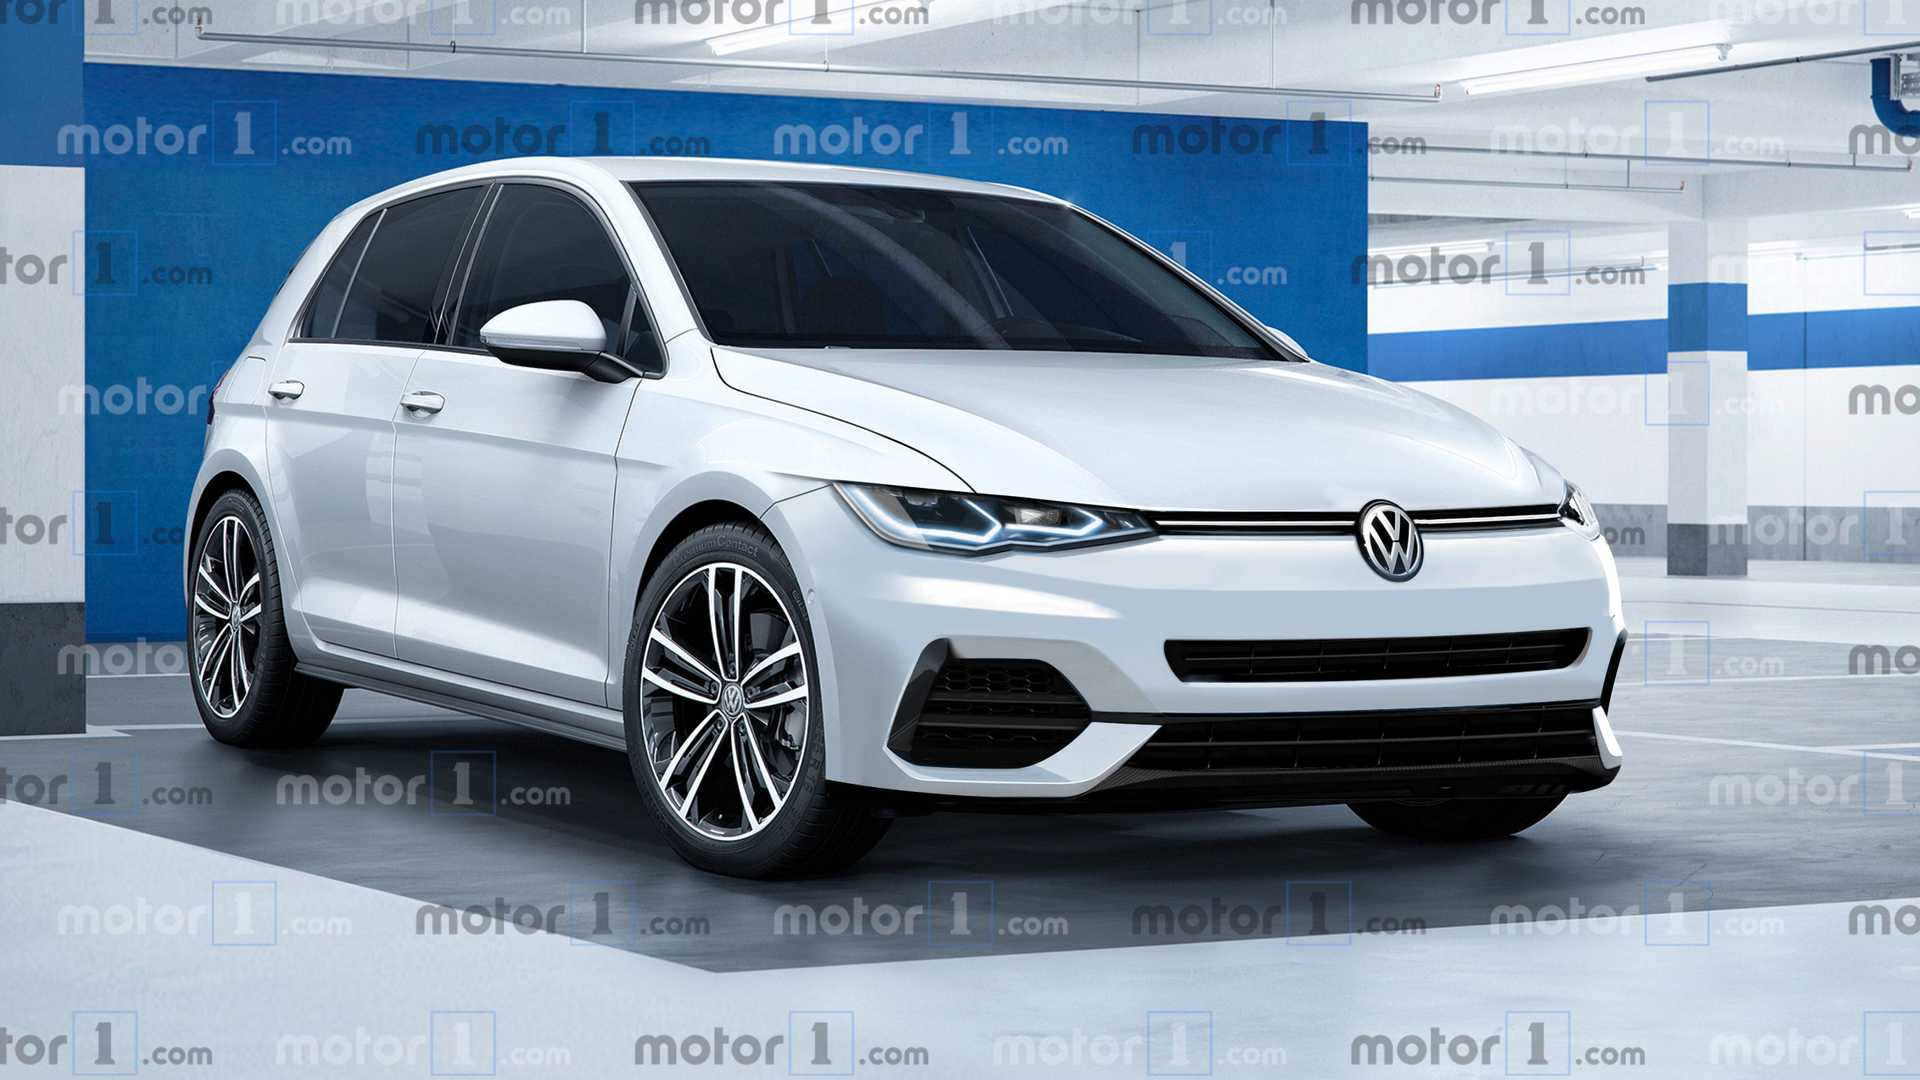 39 New 2020 Vw Golf Sportwagen Price